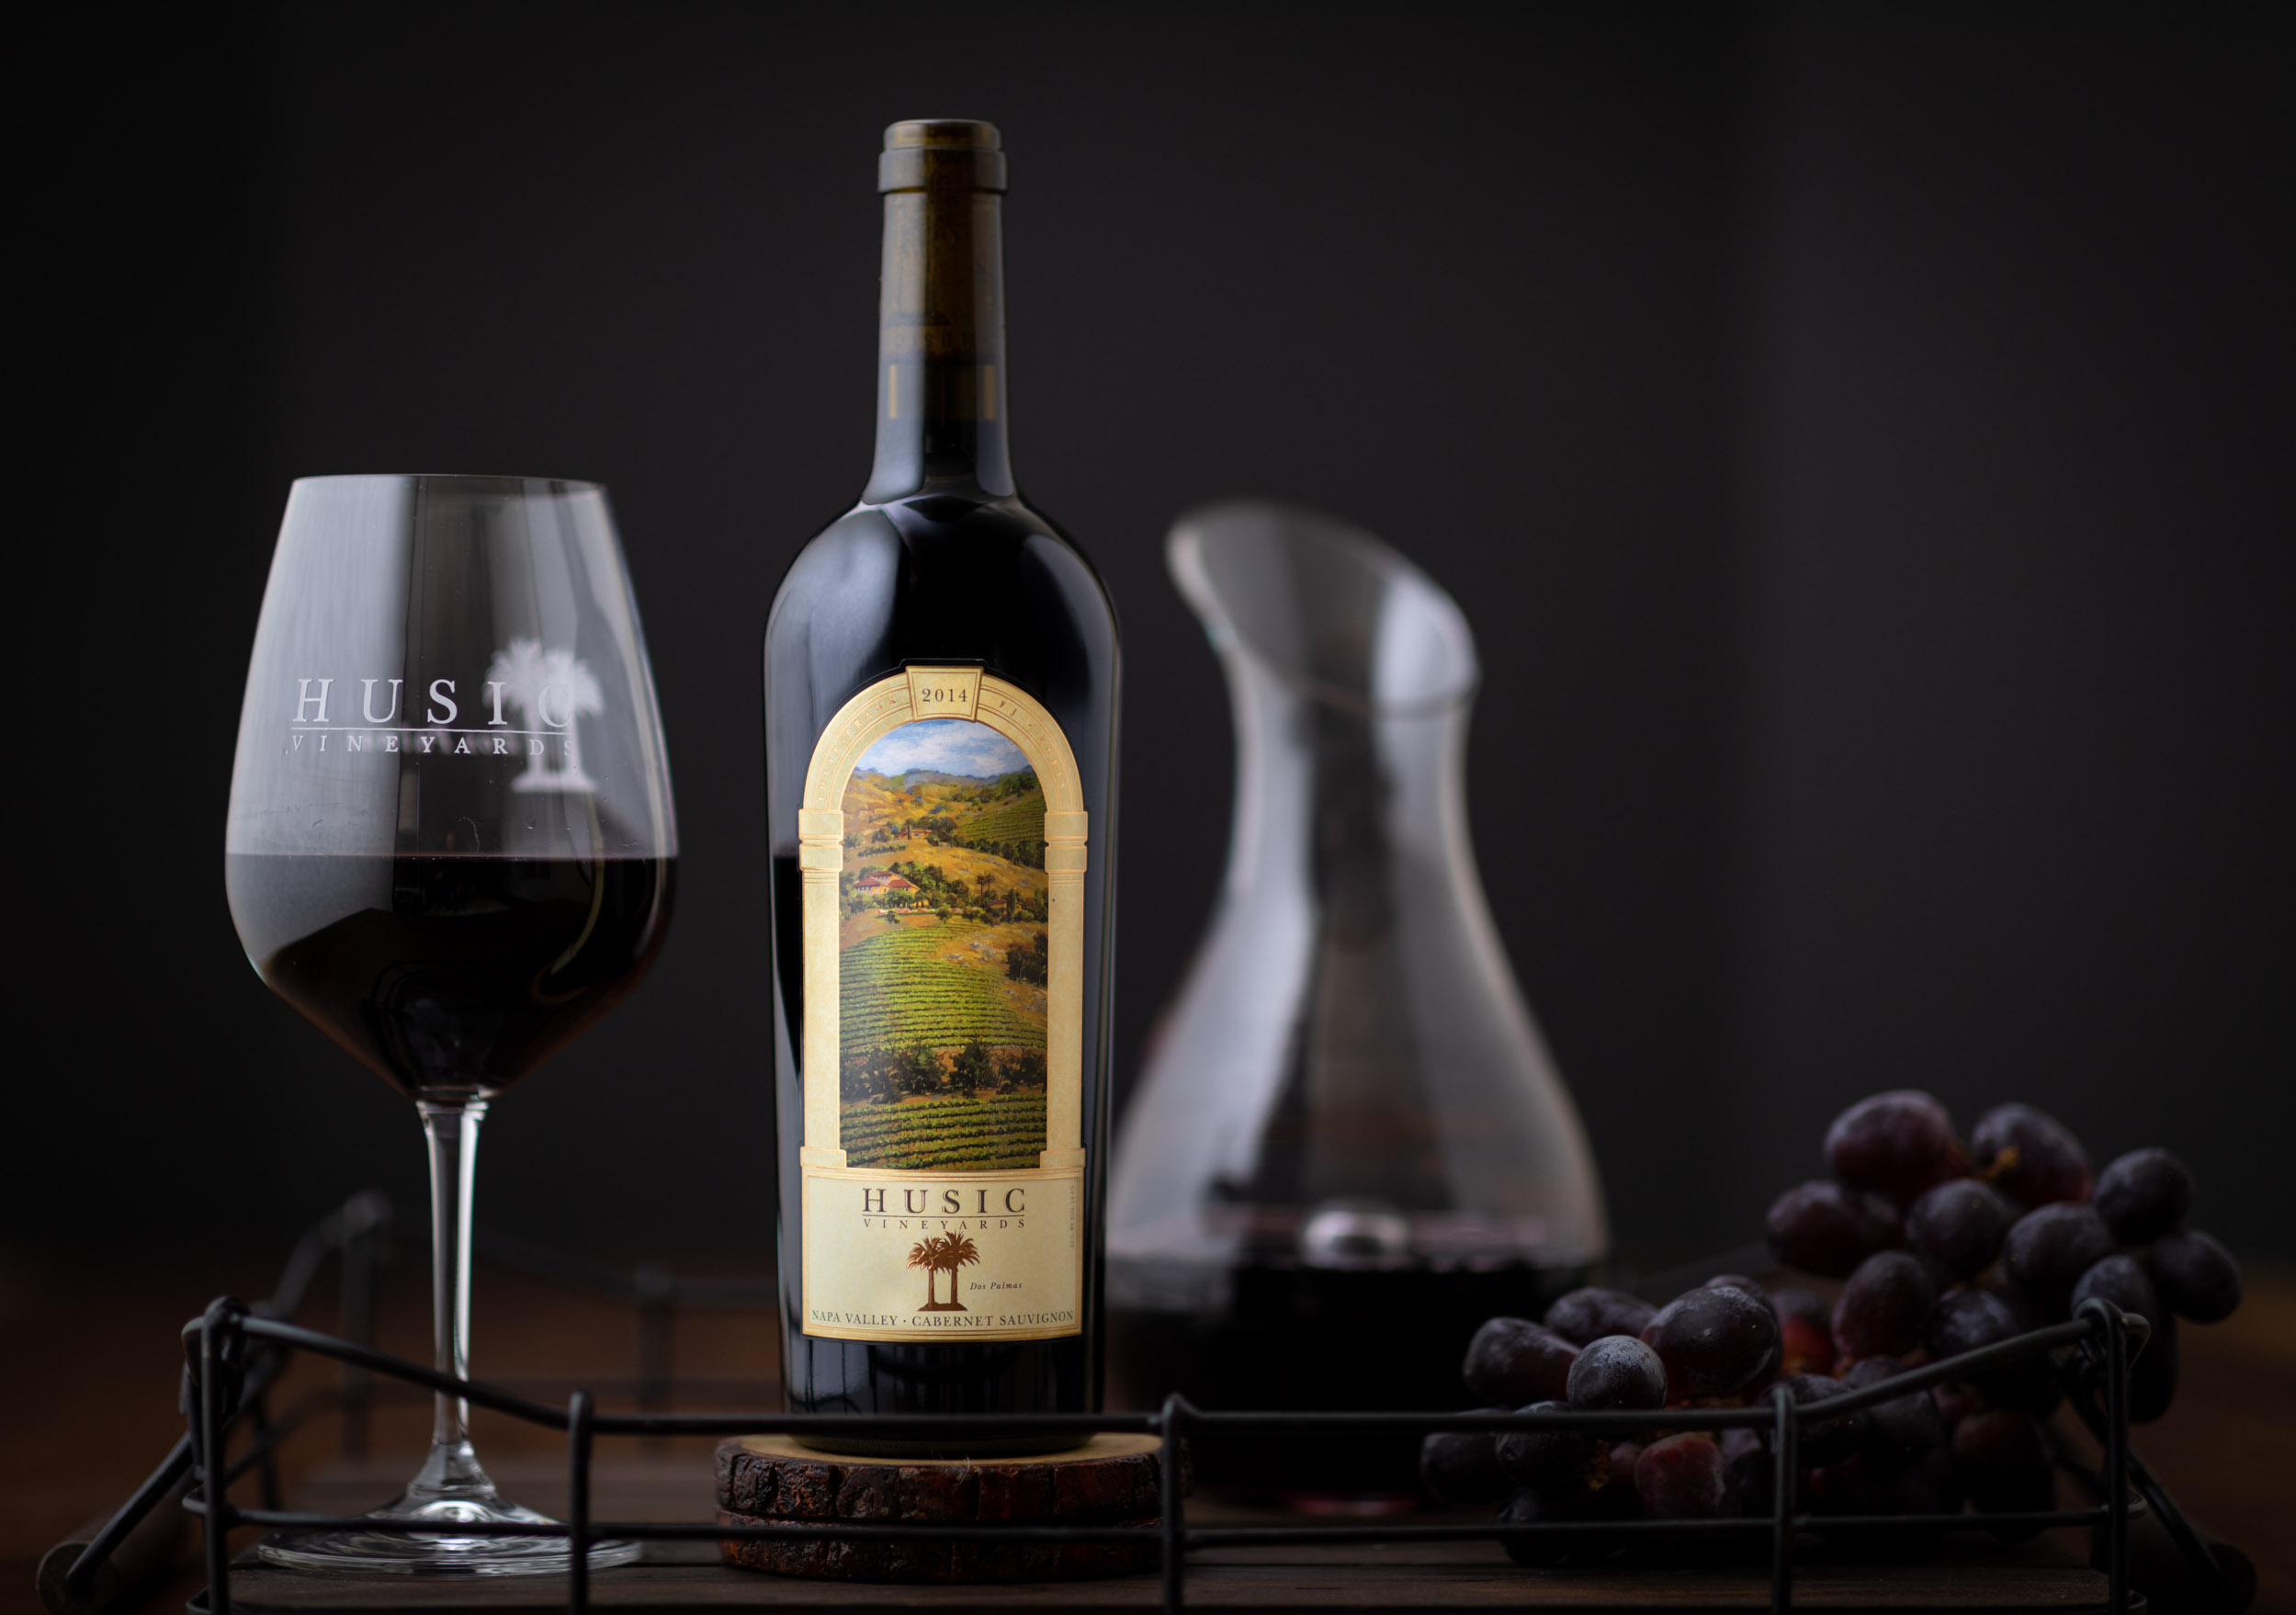 Wine Bottle Photography for Napa Valley and Sonoma County